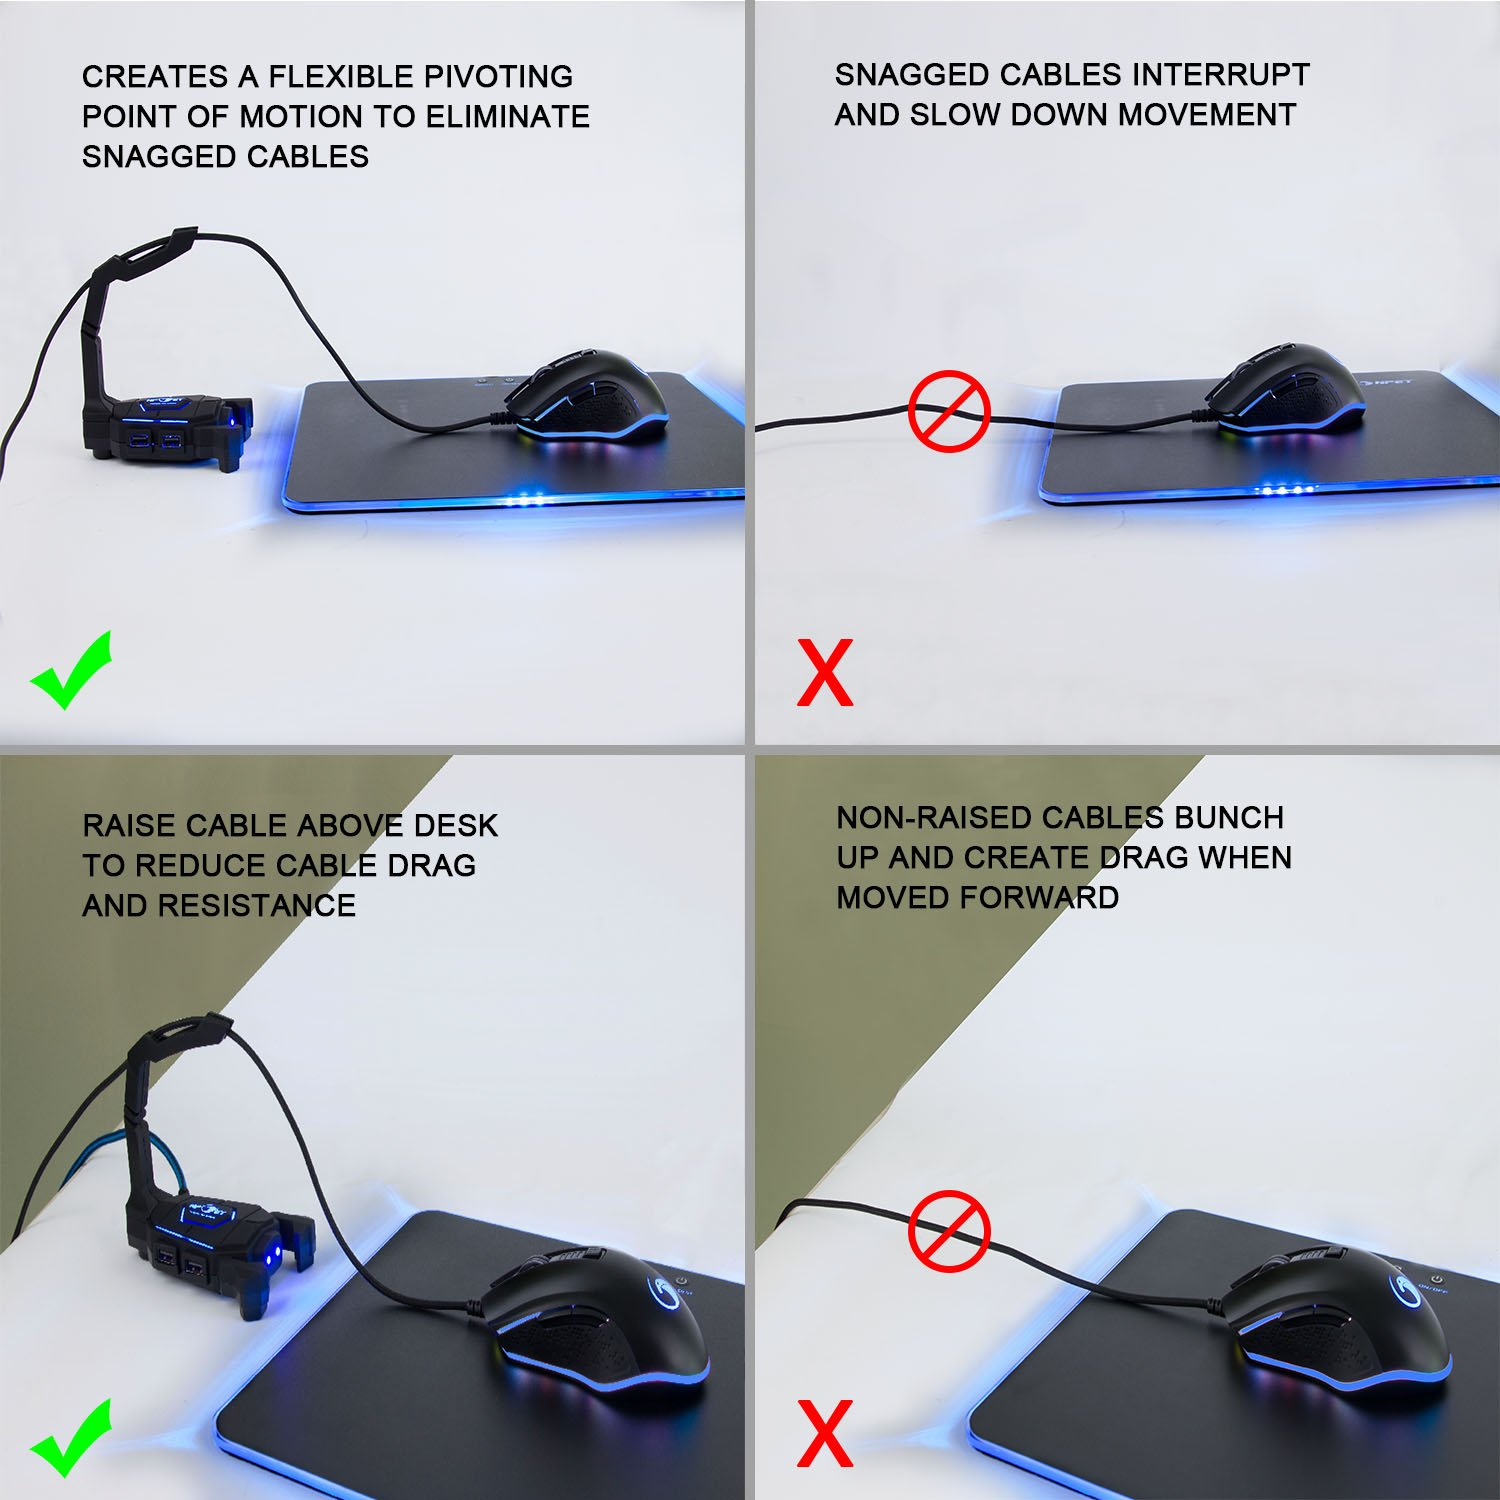 Gaming Mouse BungeeCord Holder with 4-Port USB HUB, NPET H01 LED Lighting Mouse Cable Manager, Non-Slip Rubber Pads Base, Clamping Arrangements, Designed for Pro Esports, Competitive Games by NPET (Image #4)